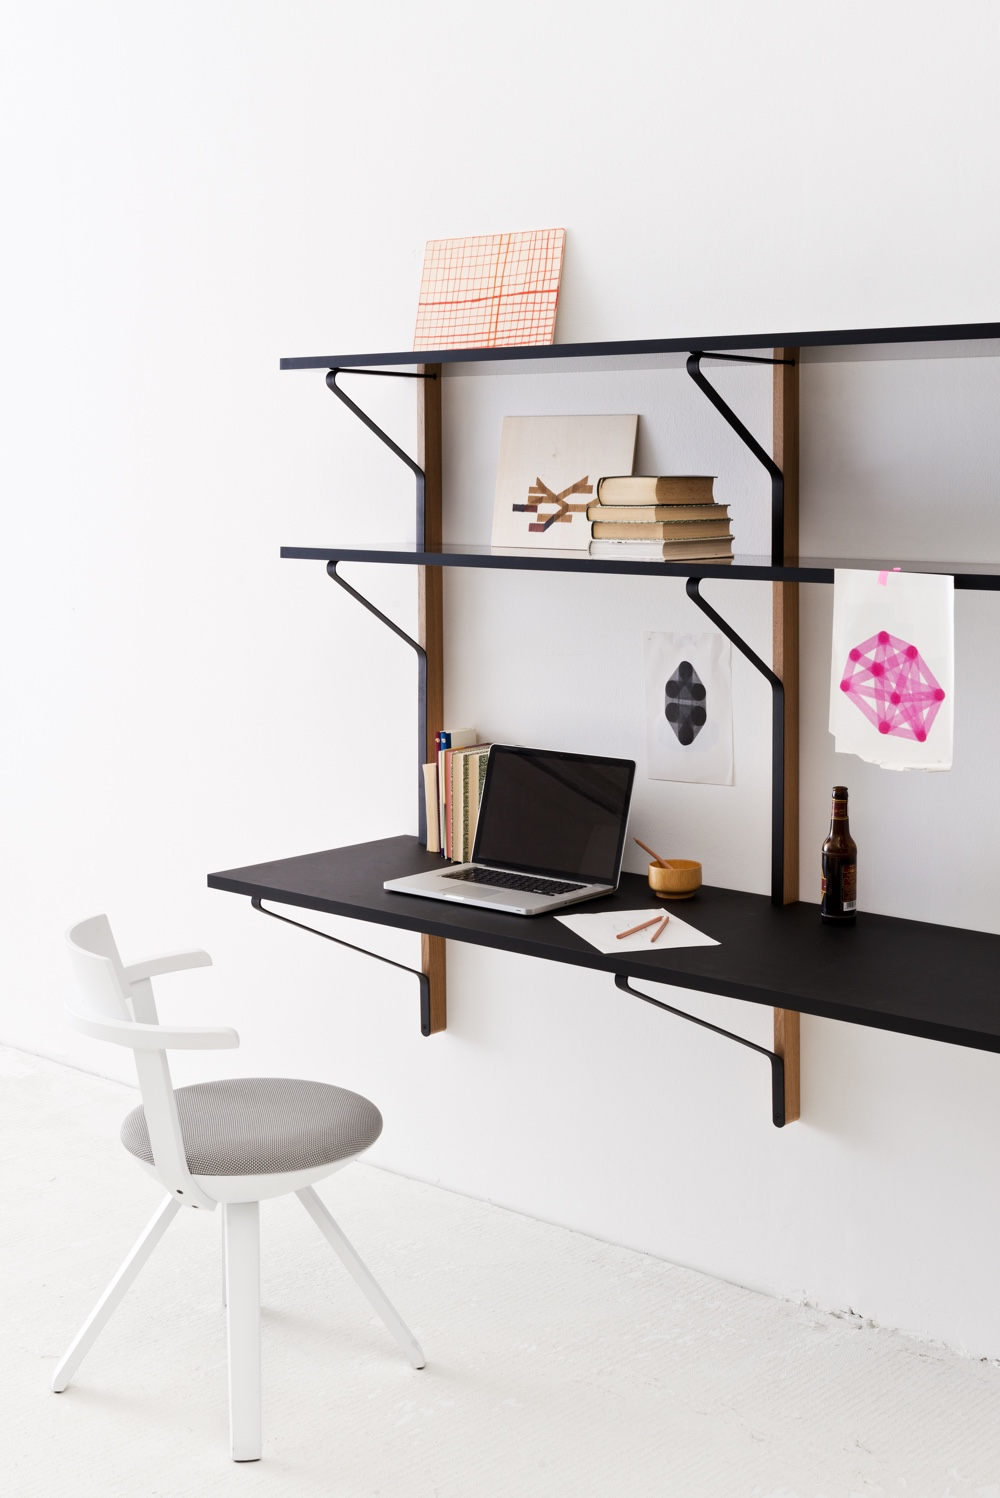 Kaari shelf with desk by Ronan & Erwan Bouroullec for Artek. Image courtesy of Artek.